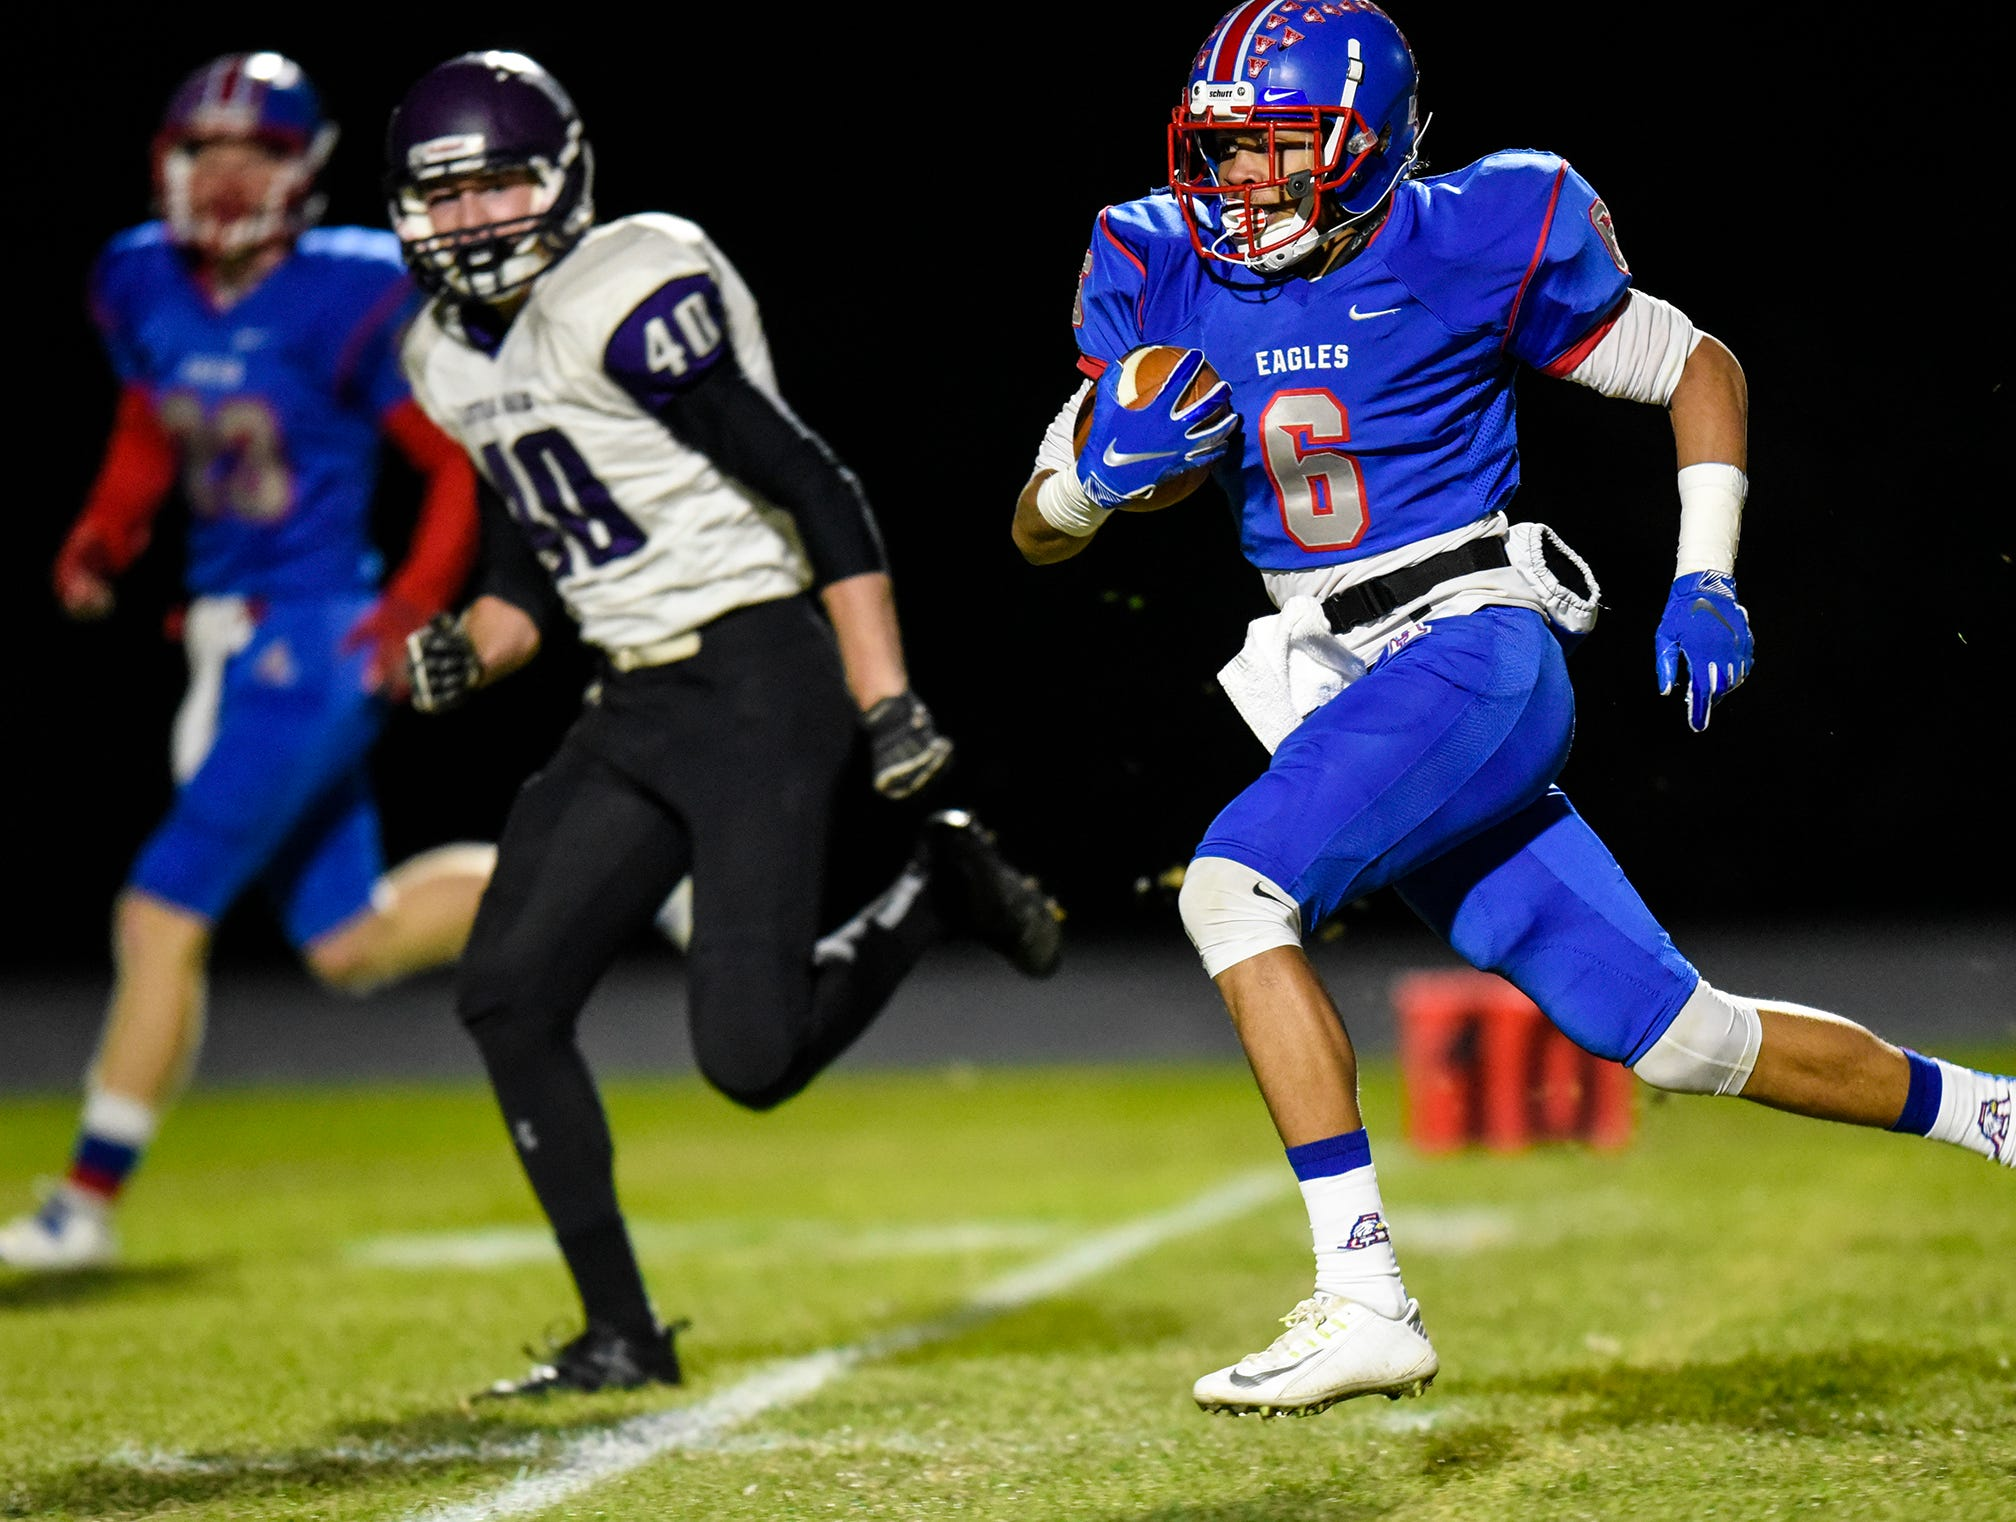 Jalyn Williams rushes for Apollo during the Tuesday, Oct. 23, game against Little Falls in St. Cloud.